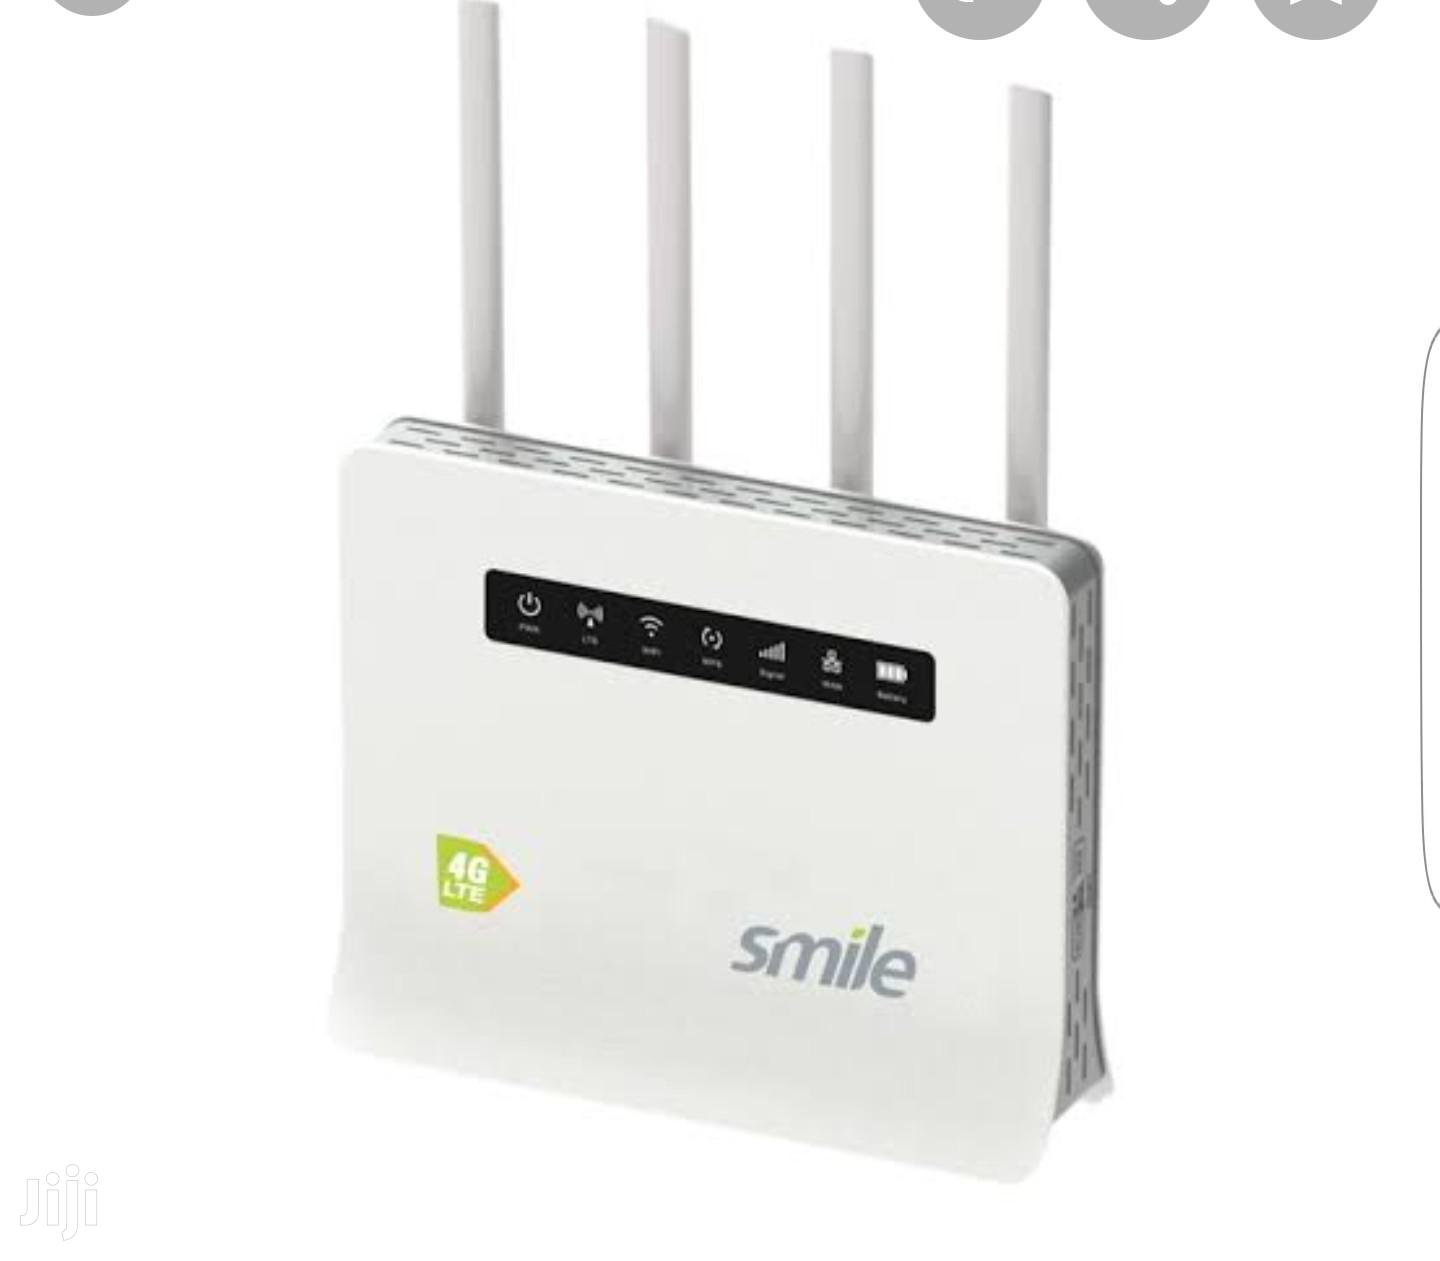 Smile Router